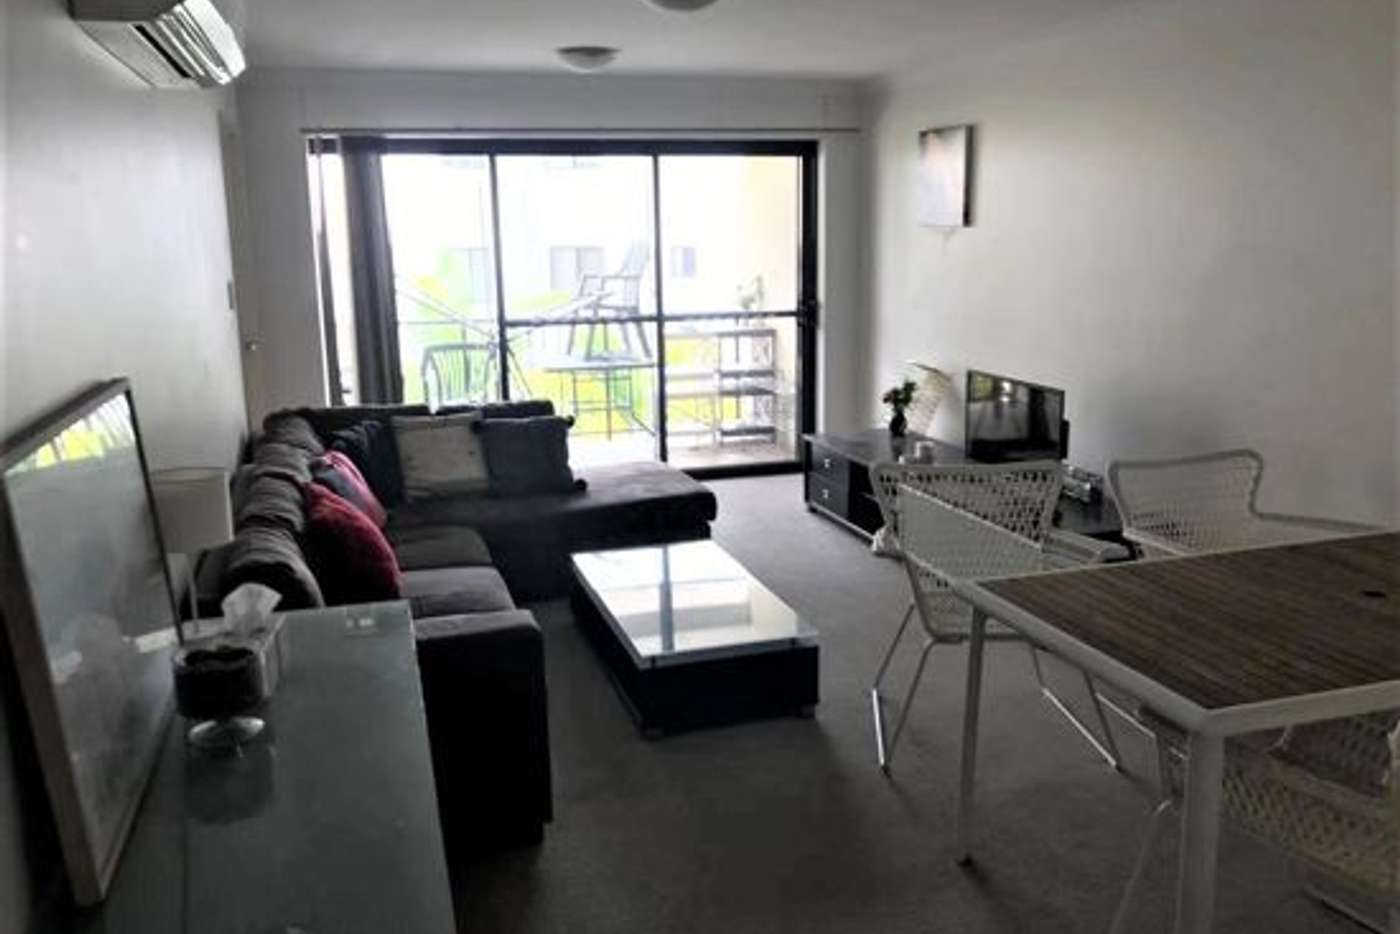 Seventh view of Homely apartment listing, 234 /26 Edward Street, Caboolture QLD 4510